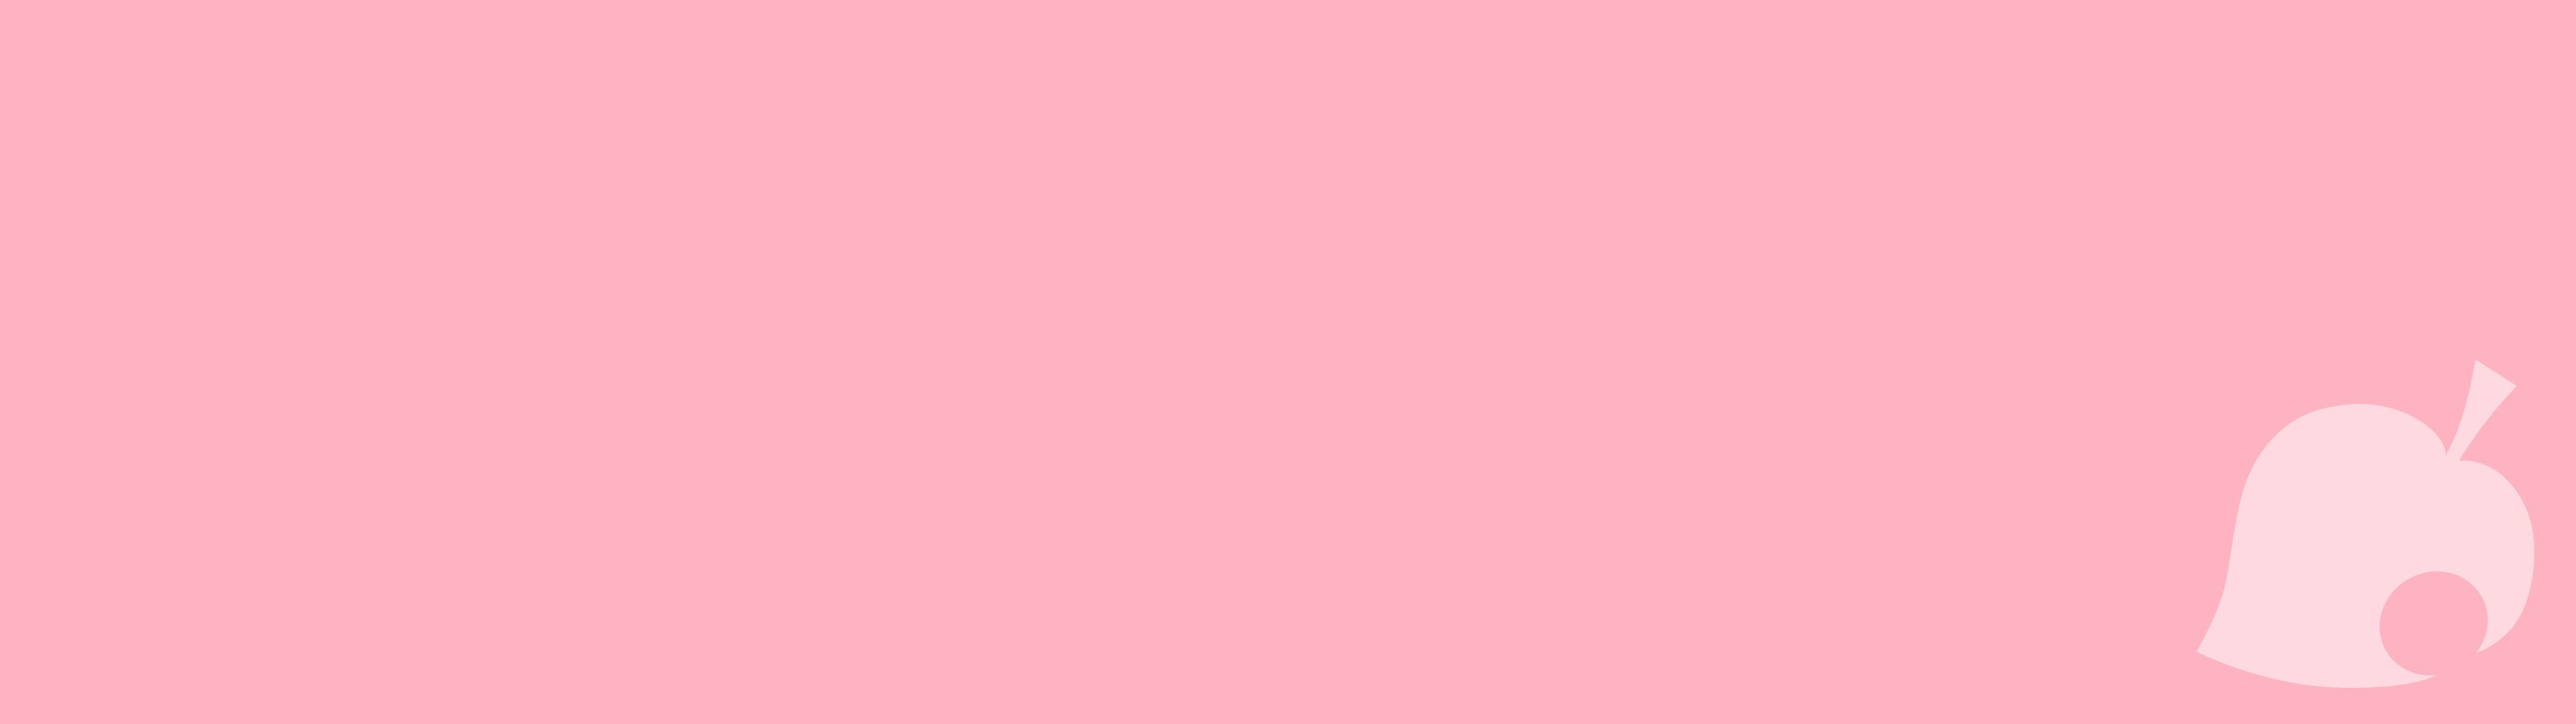 Res: 3840x1080, animal crossing new leaf animal crossing new leaf logo minimalism pink  light pink dual monitors wallpaper and background